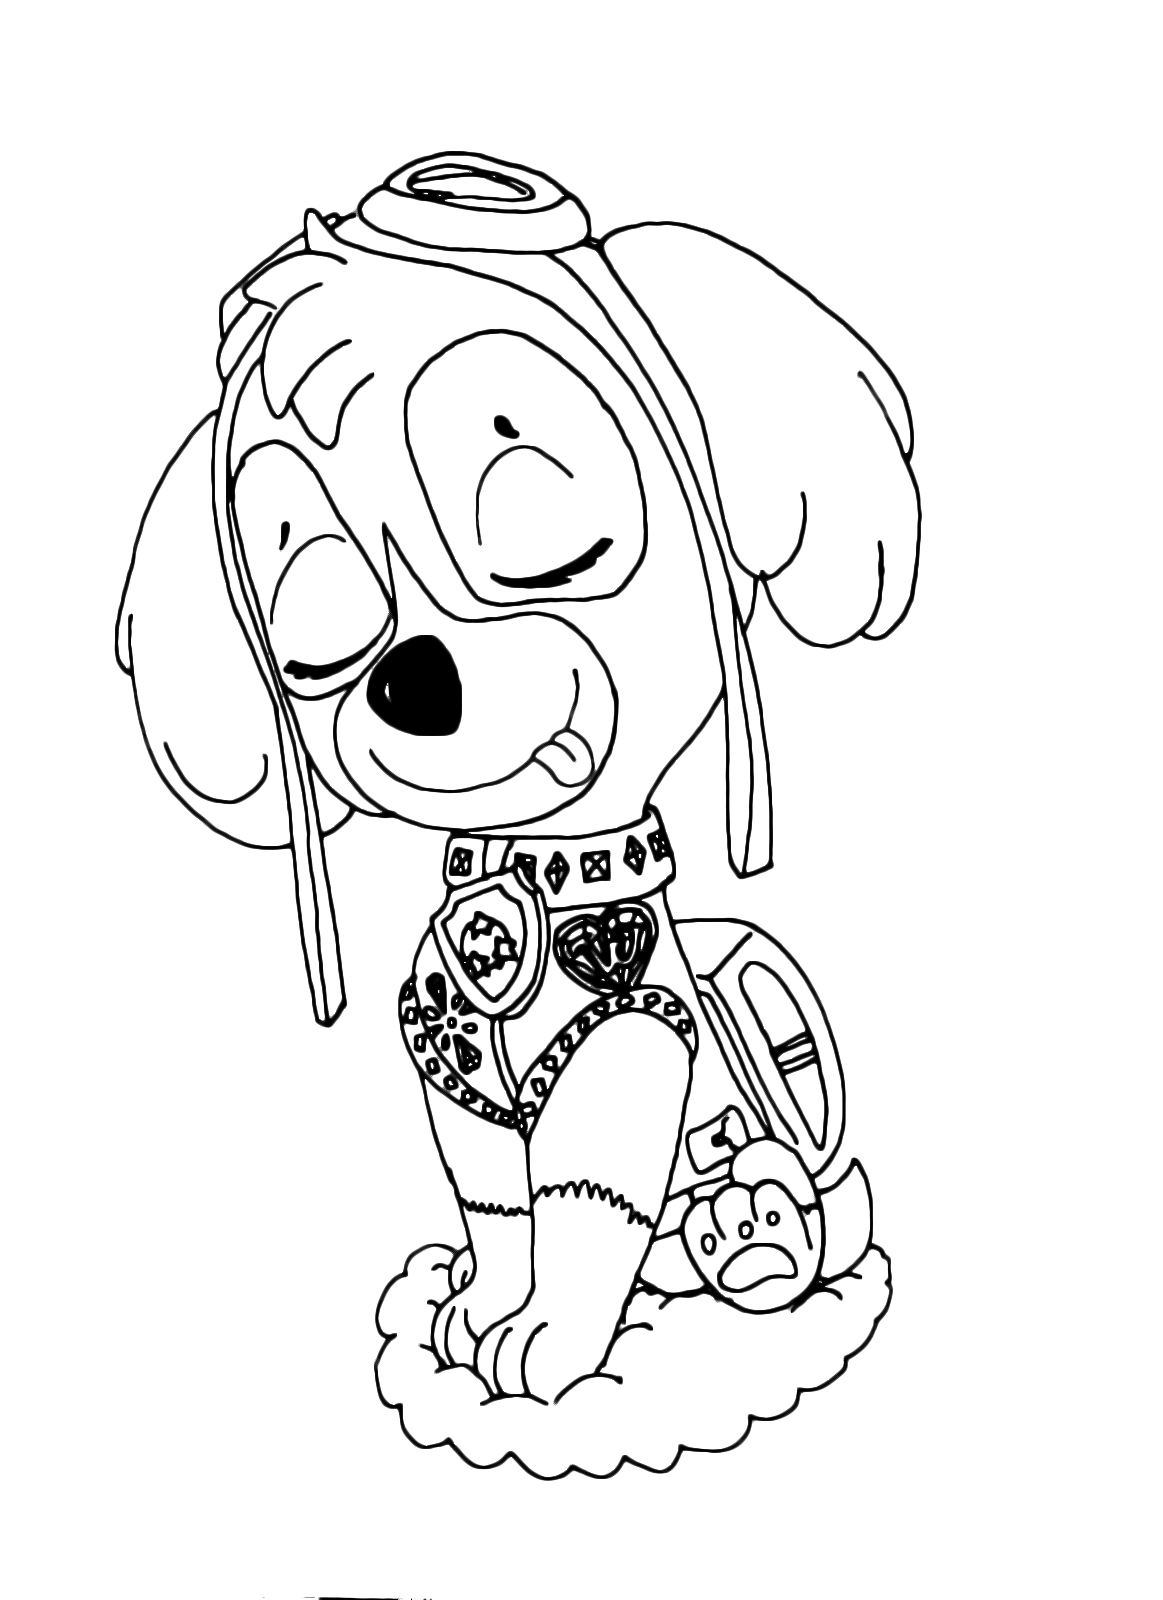 skye paw patrol coloring pages - the beautiful skye from the air rescue dog